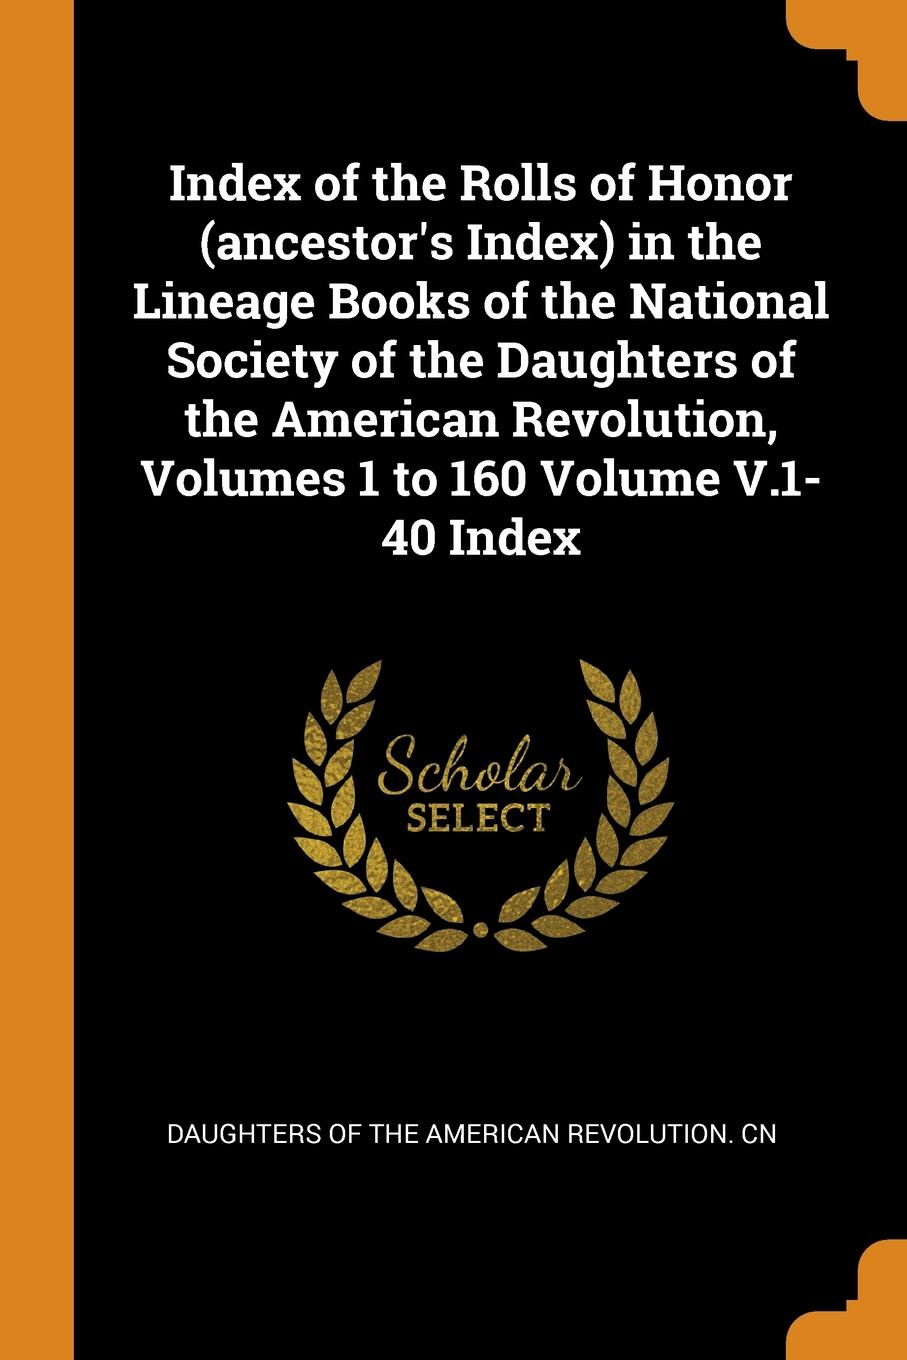 Index of the Rolls of Honor (ancestor.s Index) in the Lineage Books of the National Society of the Daughters of the American Revolution, Volumes 1 to 160 Volume V.1-40 Index